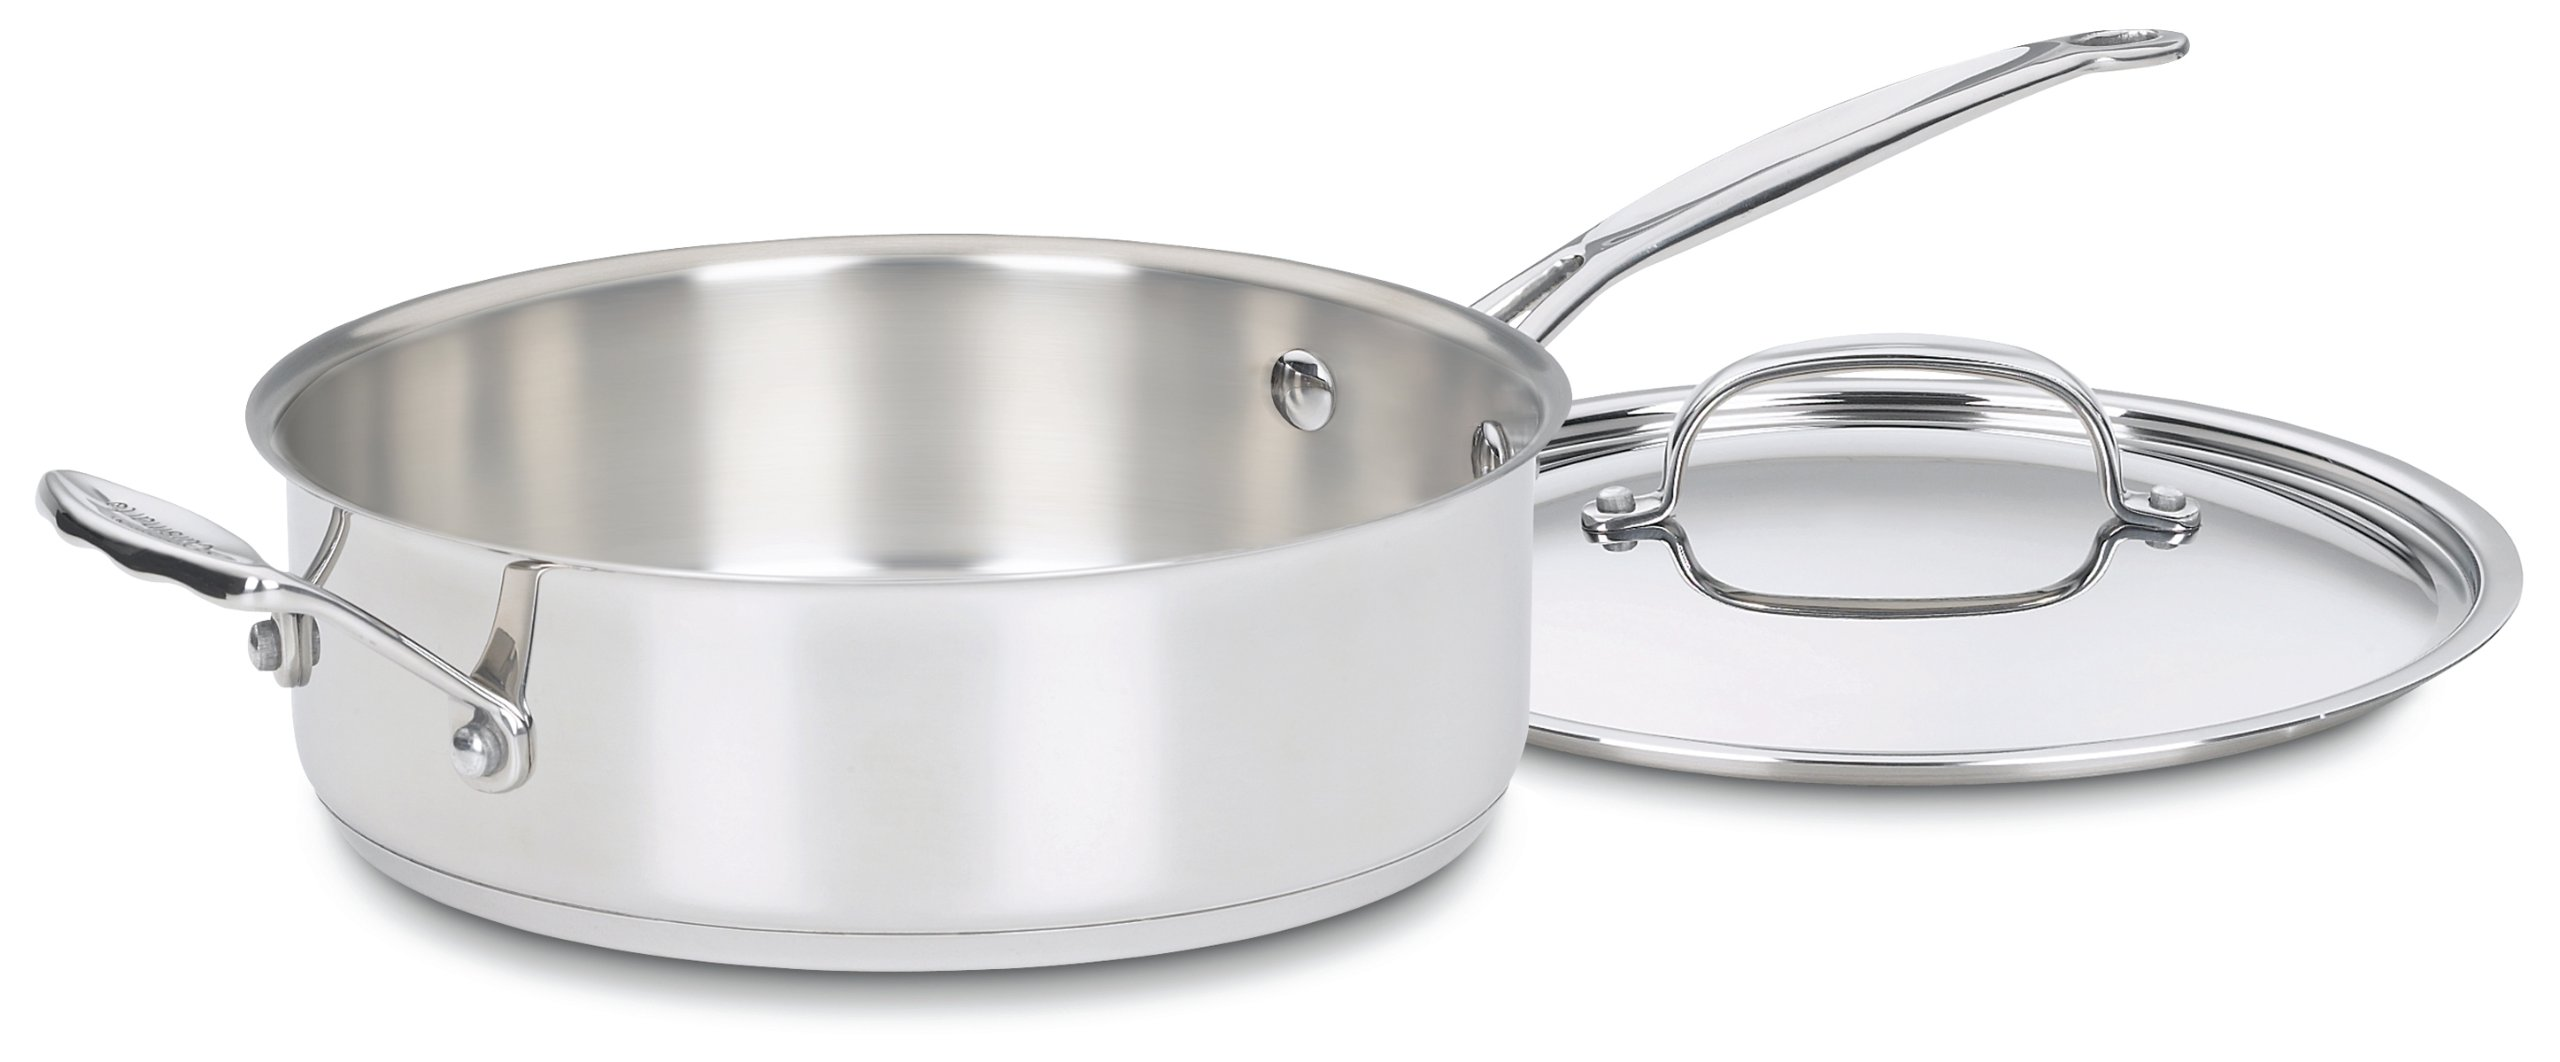 Cuisinart 733-24H Chef's Classic Stainless 3-1/2-Quart Saute Pan with Helper Handle & Cover by Cuisinart